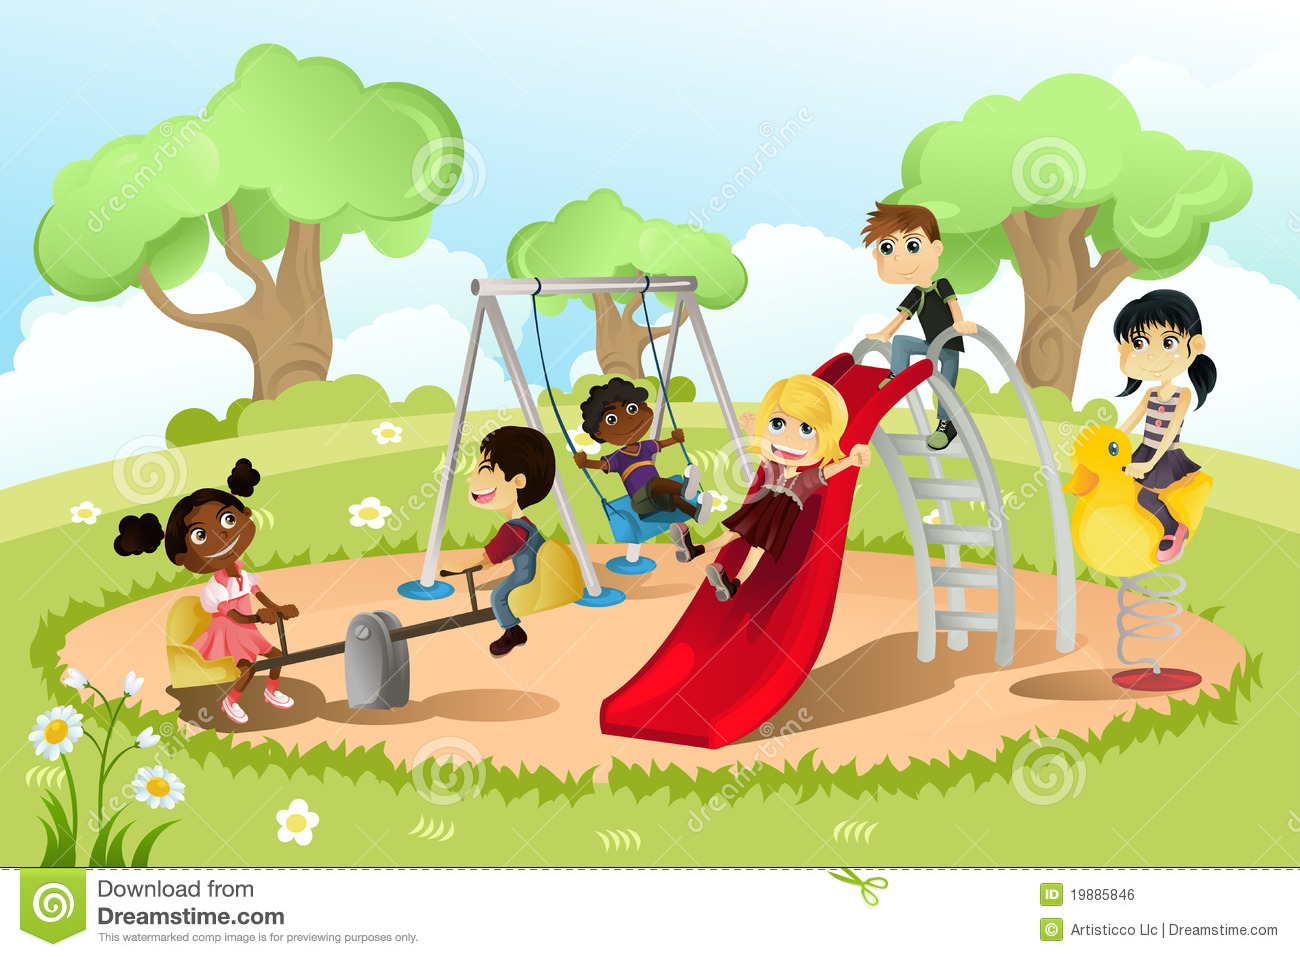 Children playing in the park clipart 14 » Clipart Station.